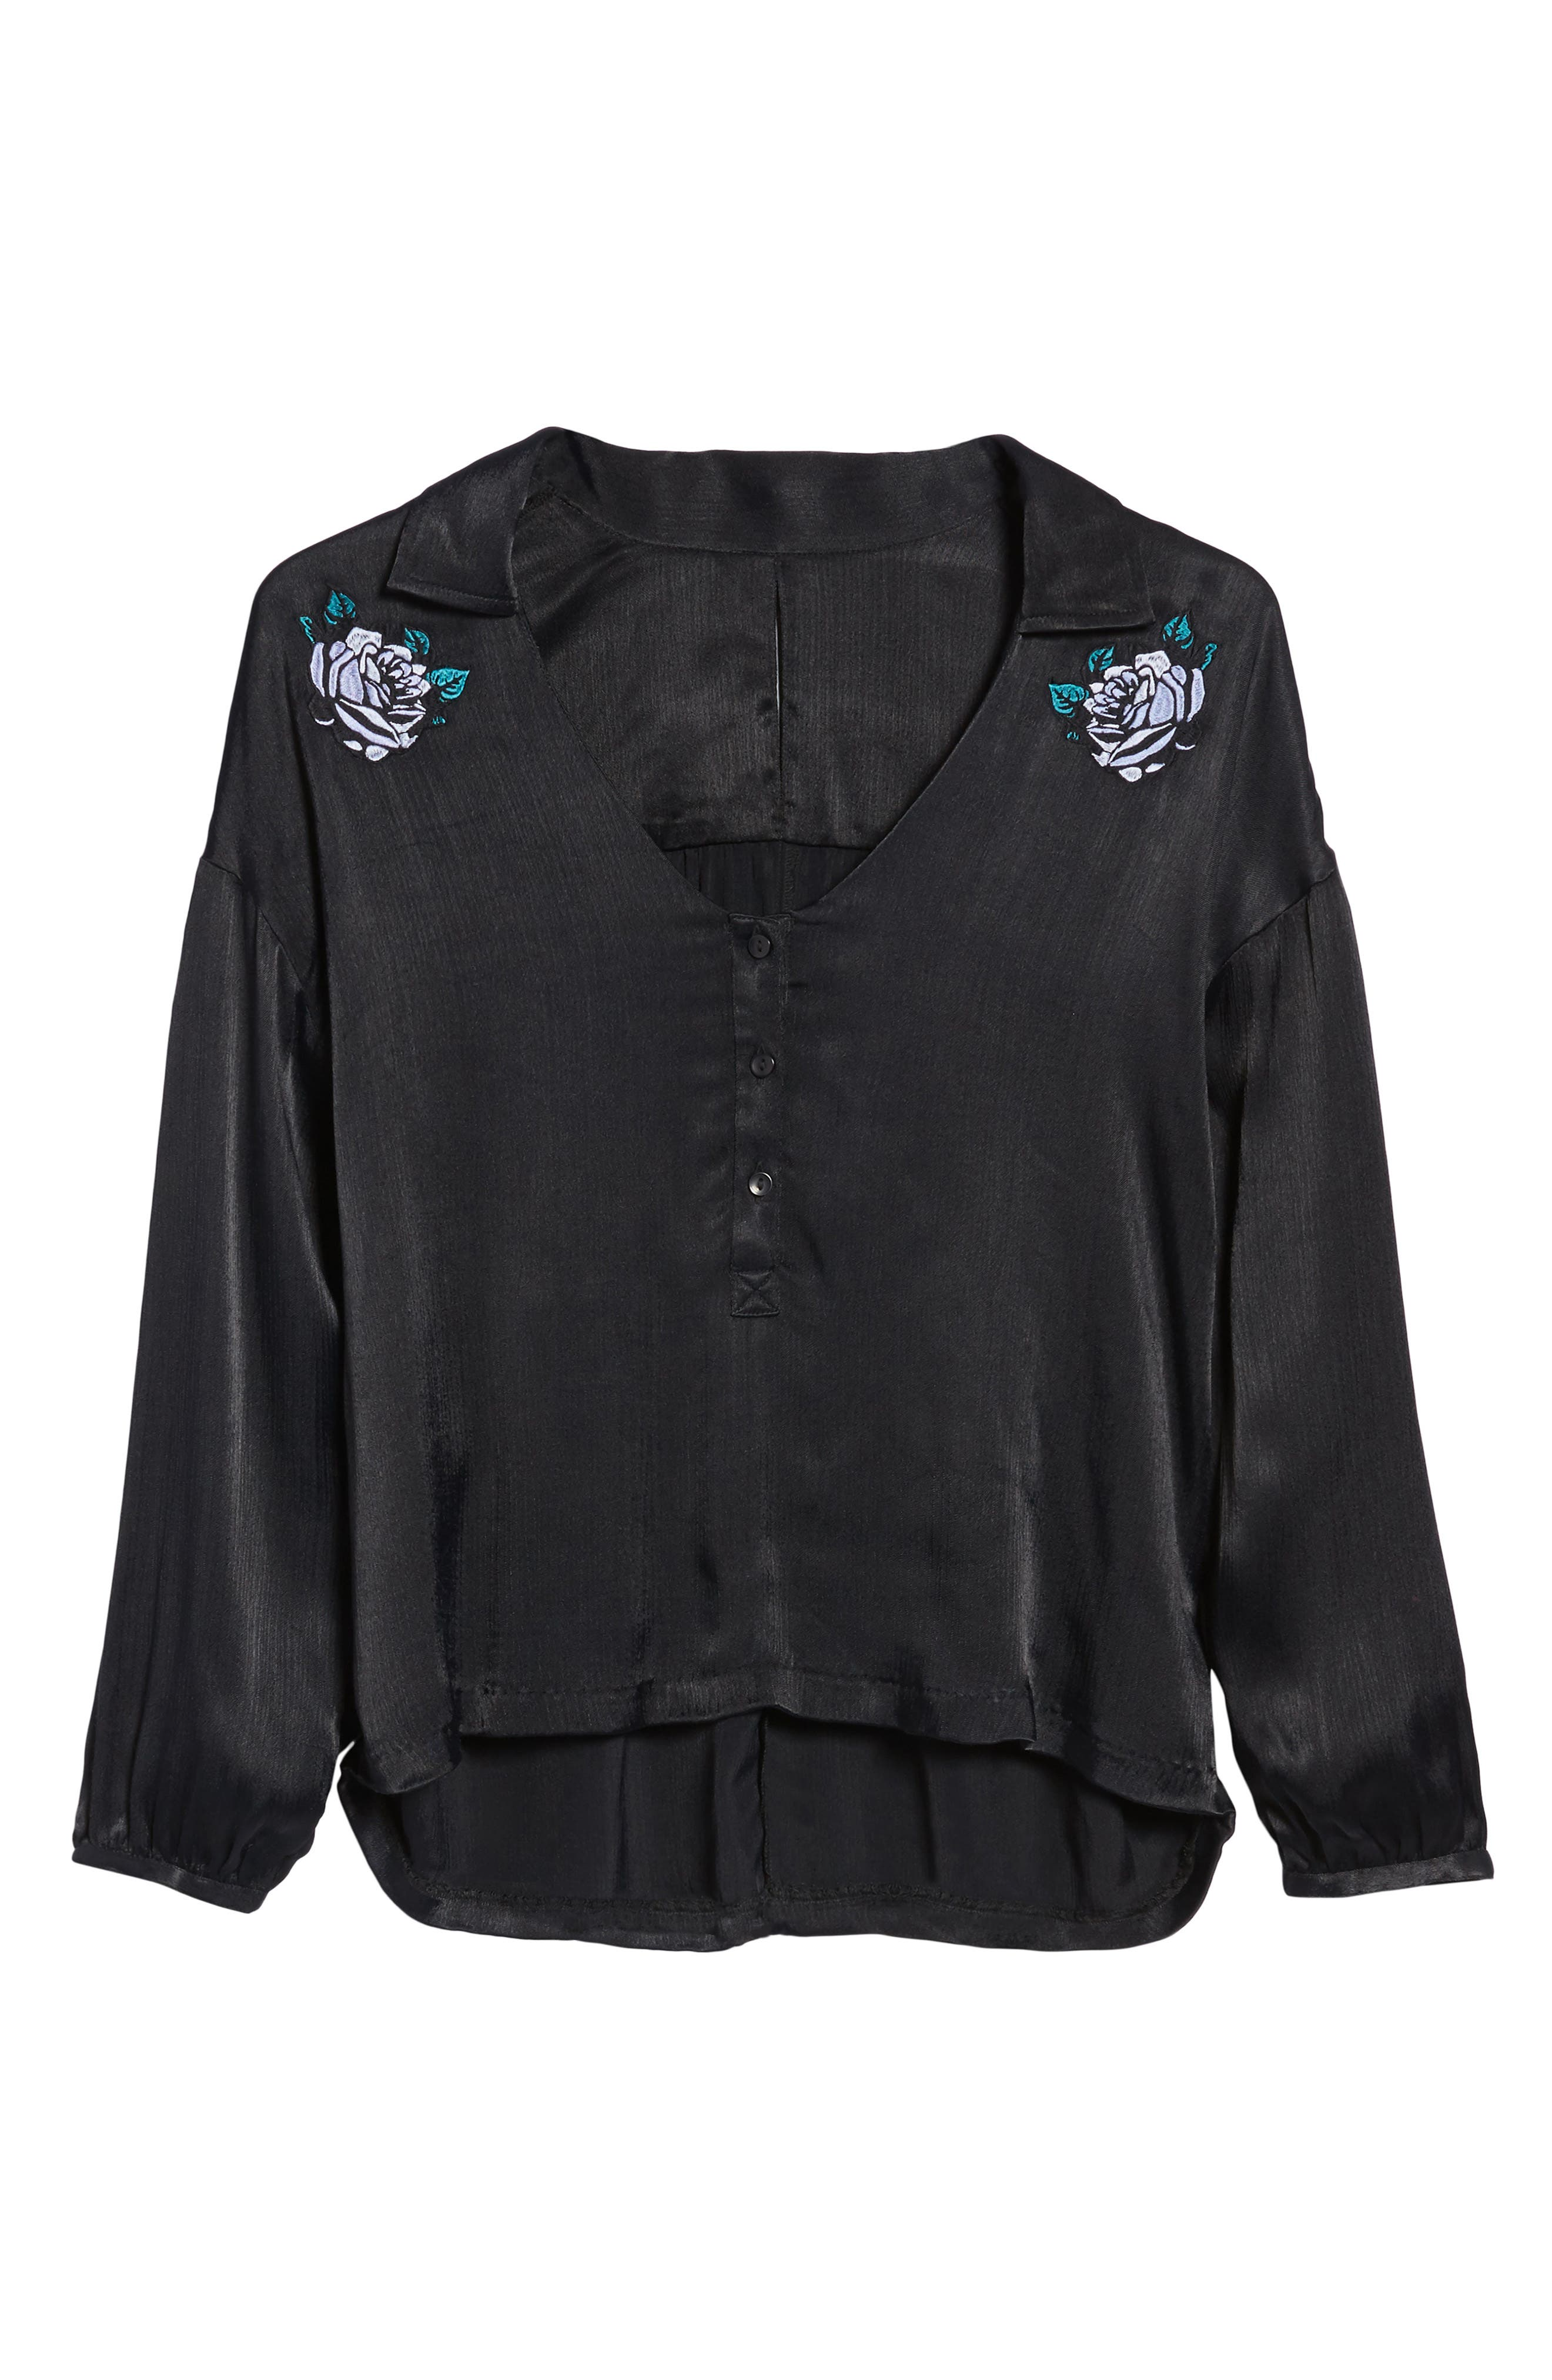 Naomi Embroidered Blouse,                             Alternate thumbnail 6, color,                             001